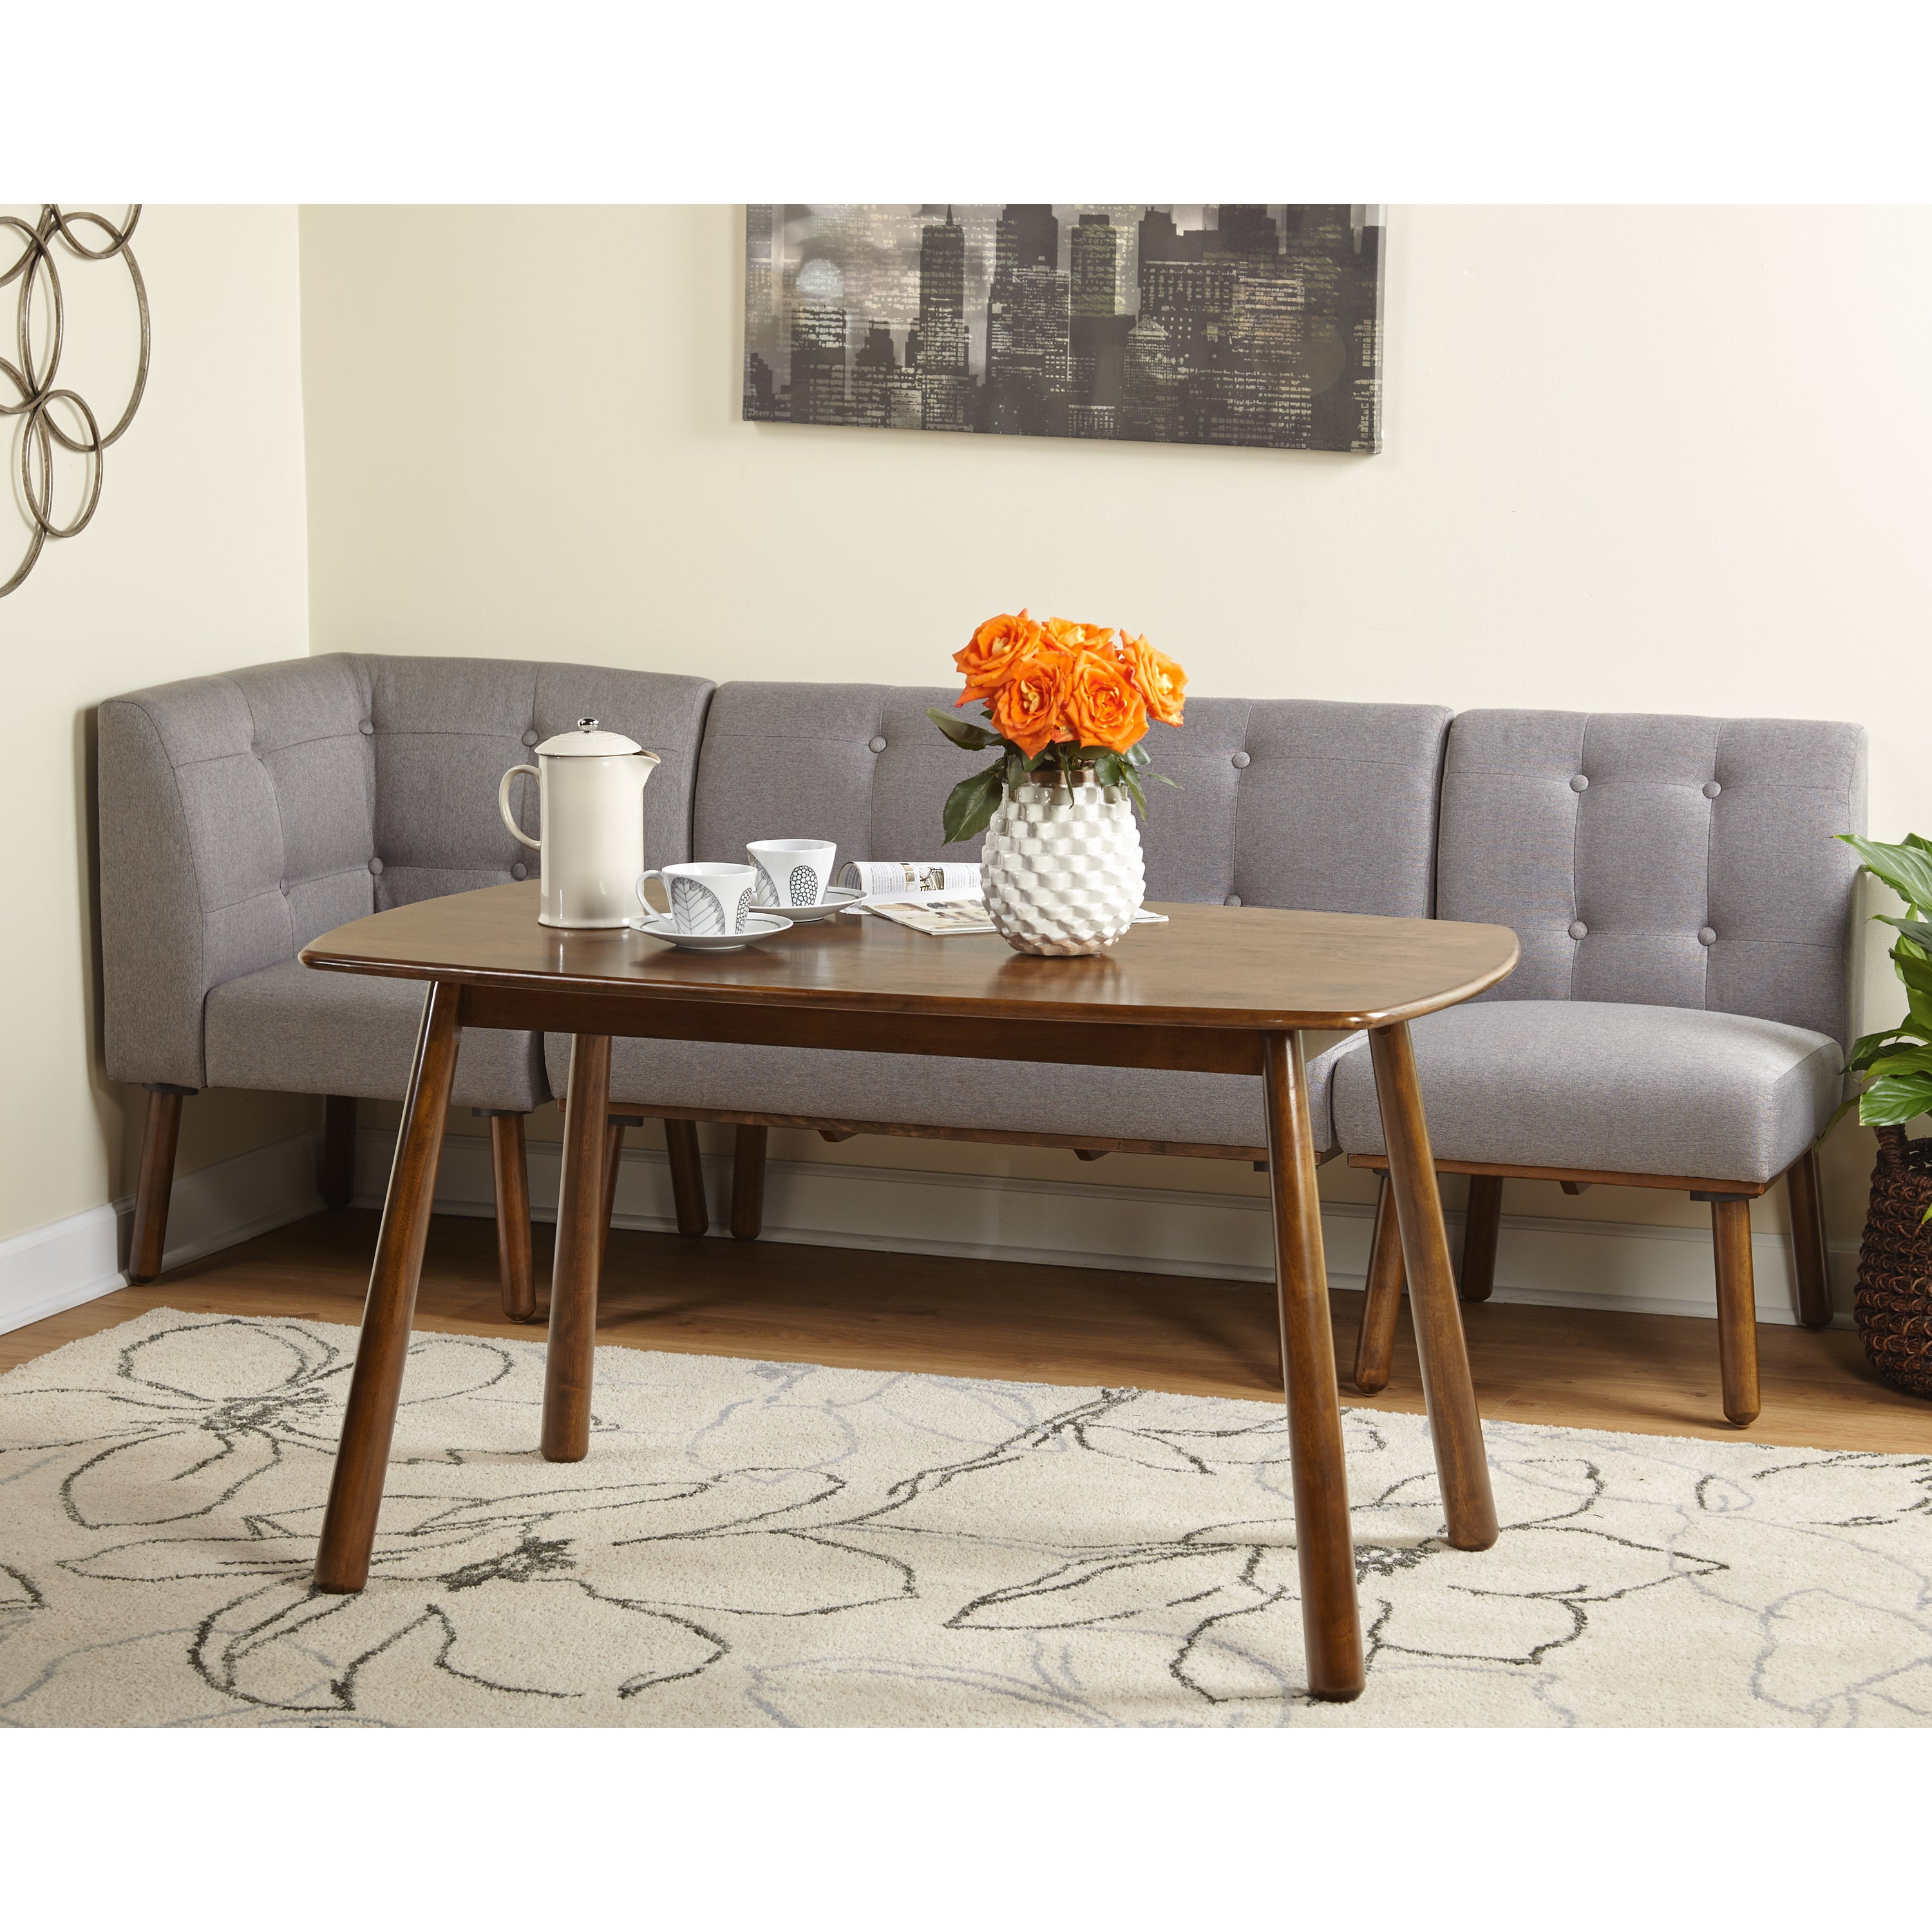 High Quality Shop Simple Living 4 Piece Playmate Living/Dining Room Set   Free Shipping  Today   Overstock.com   13223540